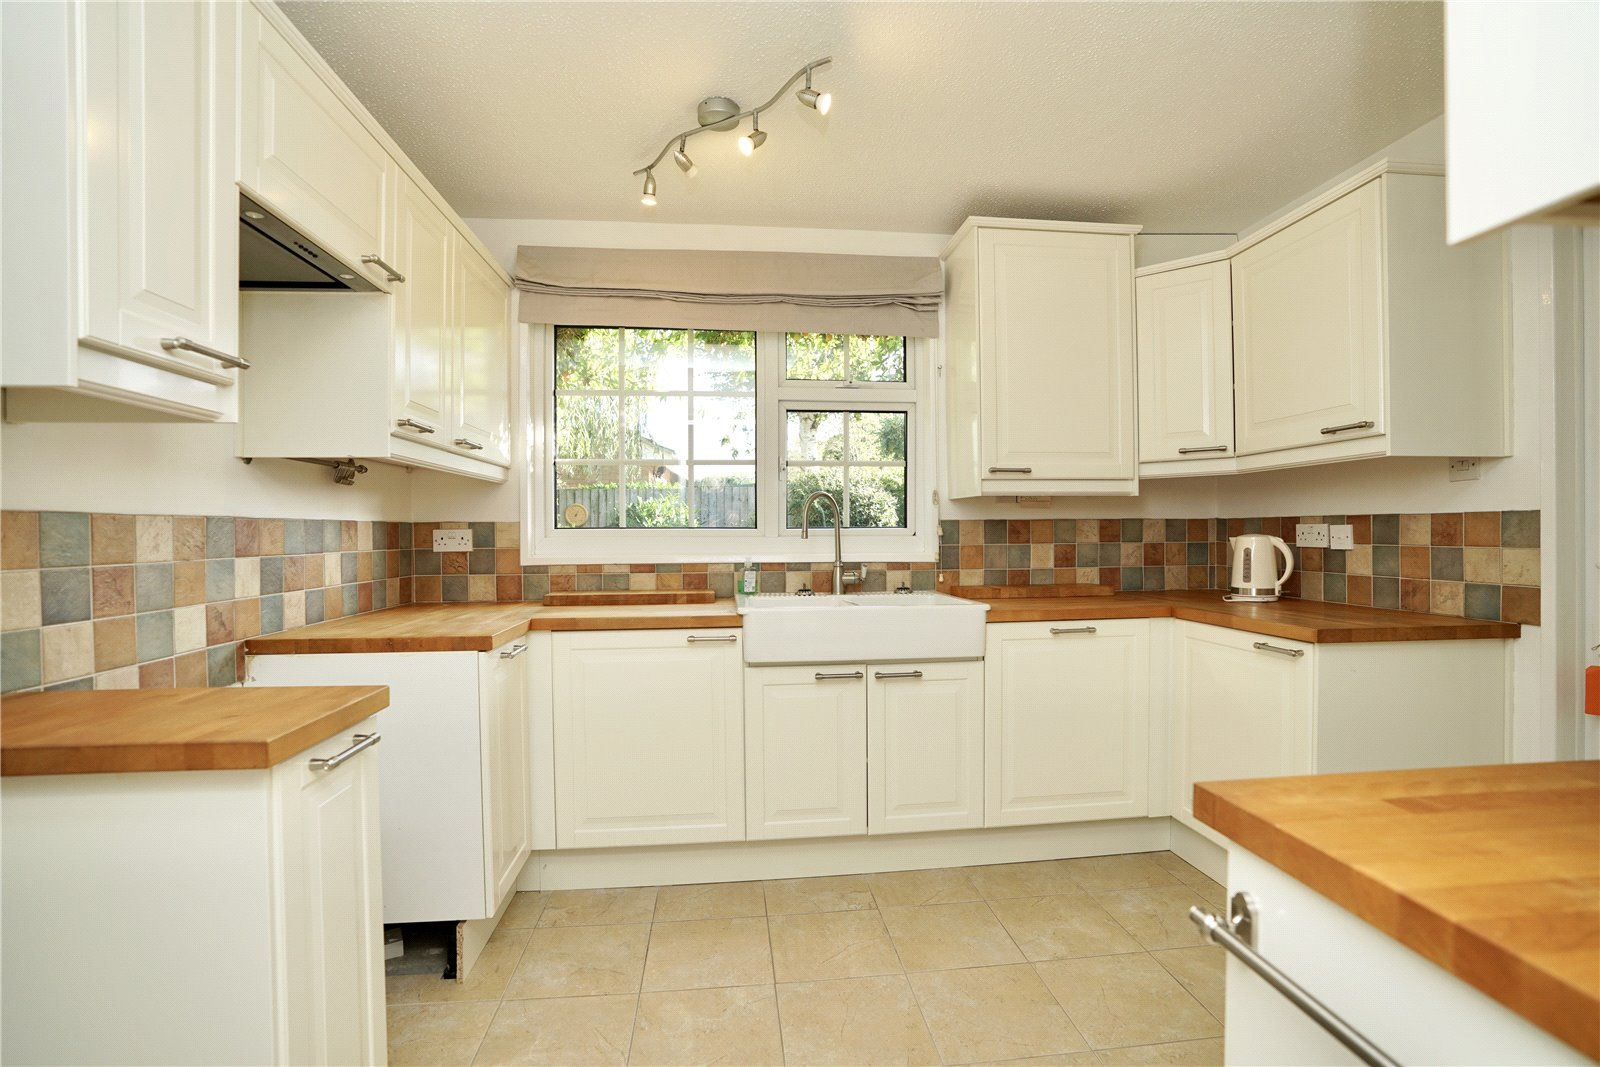 4 bed house for sale in All Hallows, Sandy 5